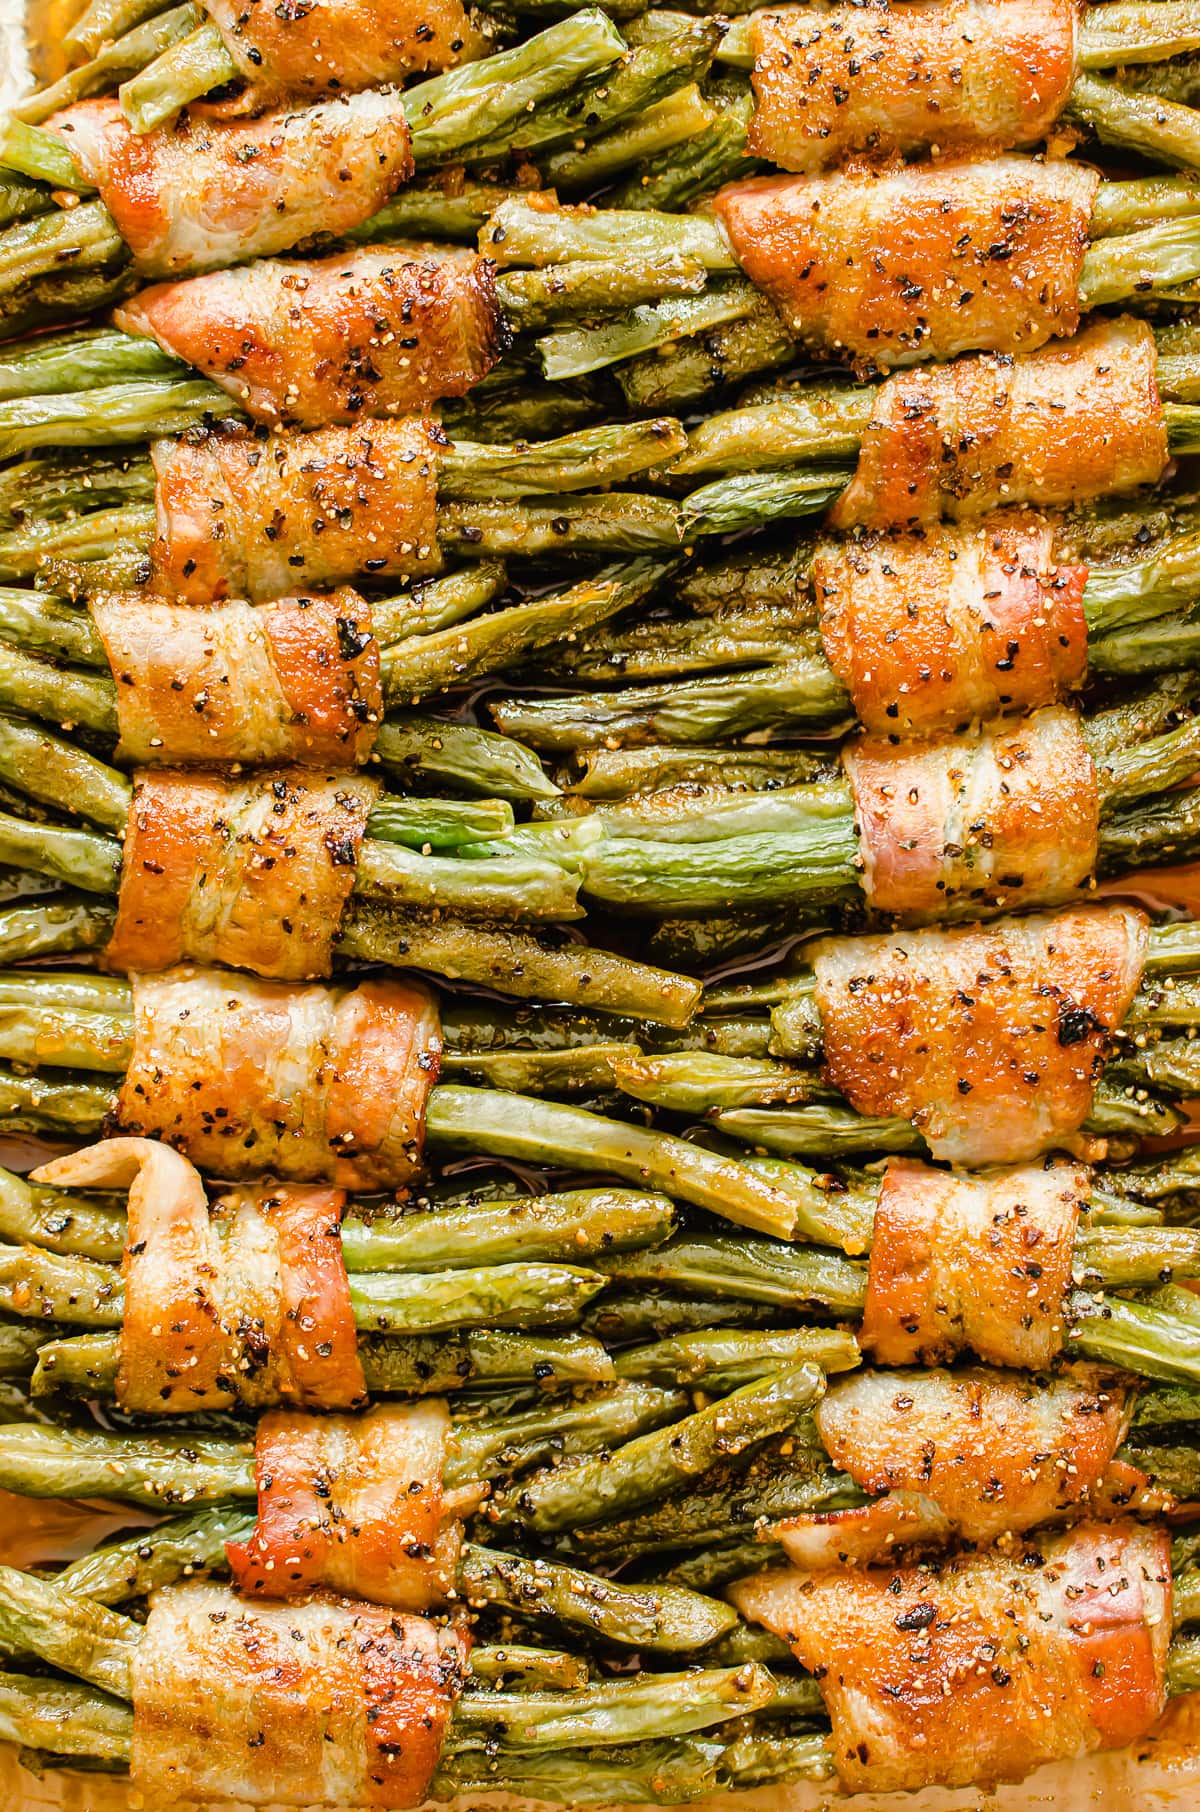 A close-up shot of green bean bundles in a baking dish to show texture once they are baked.